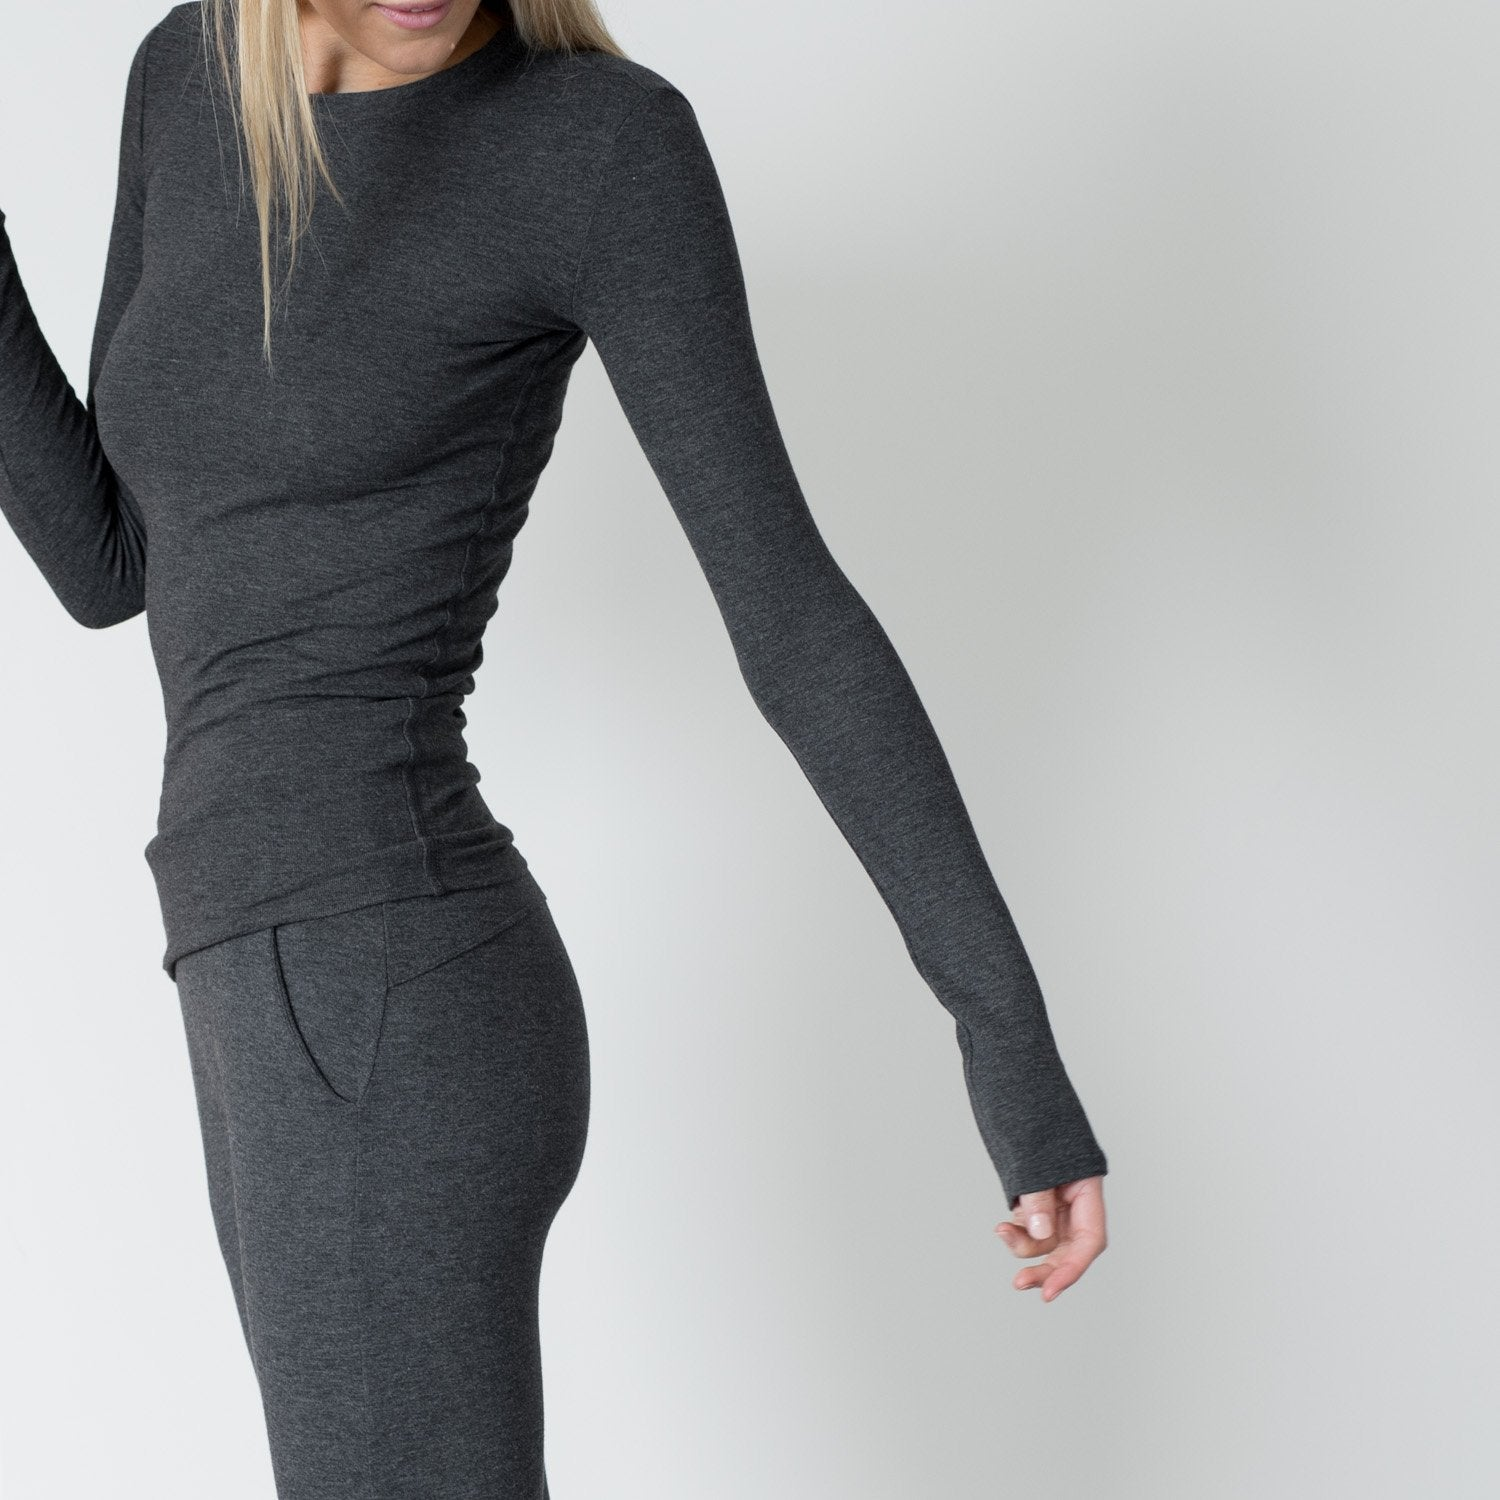 Lunya Sleepwear Restore Pima Base Long Sleeve Tee - #Charcoal